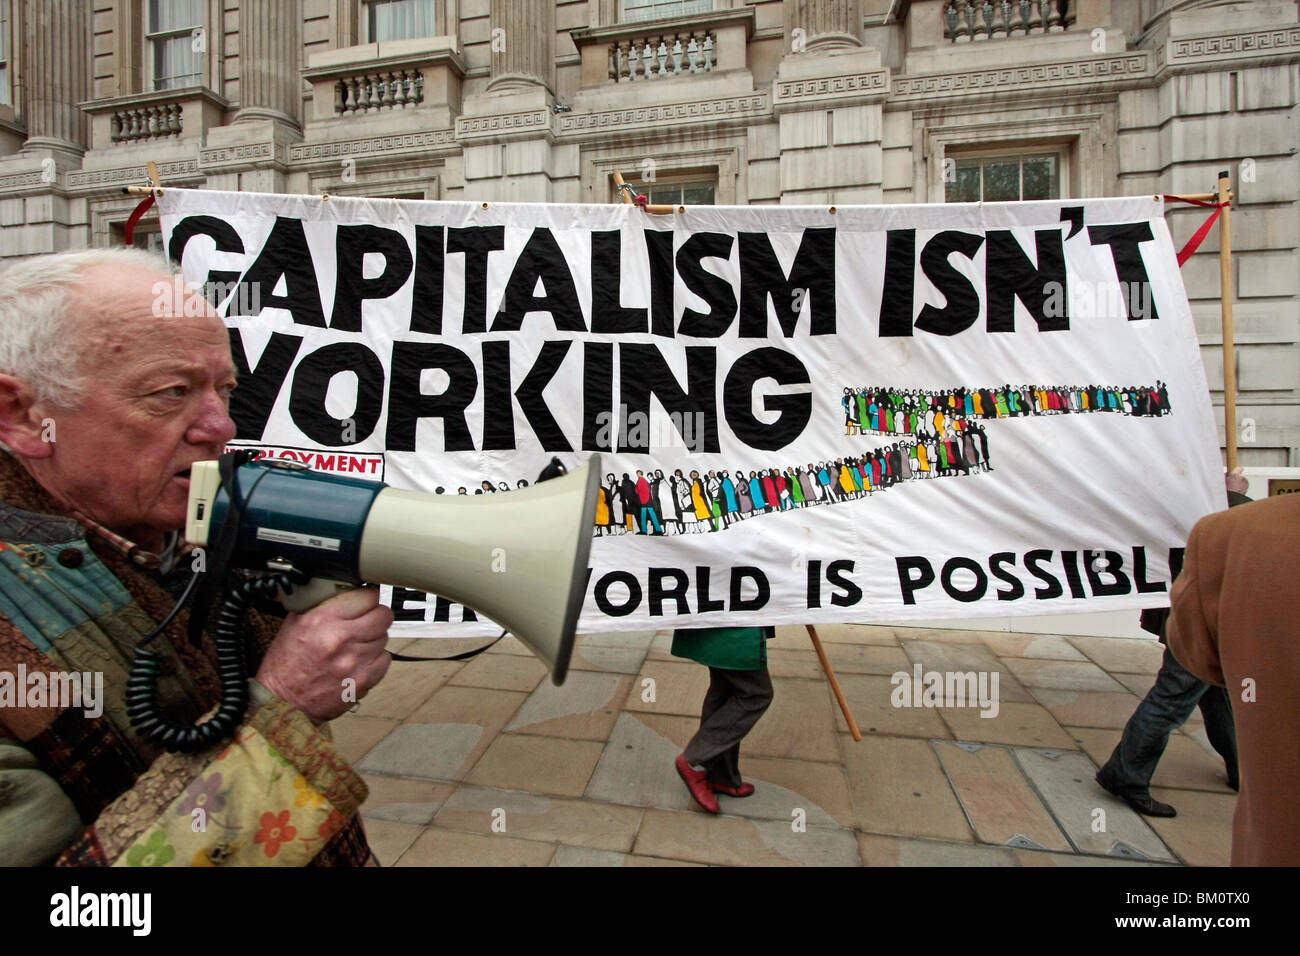 An anti-capitalist demo with a large banner in central London - Stock Image